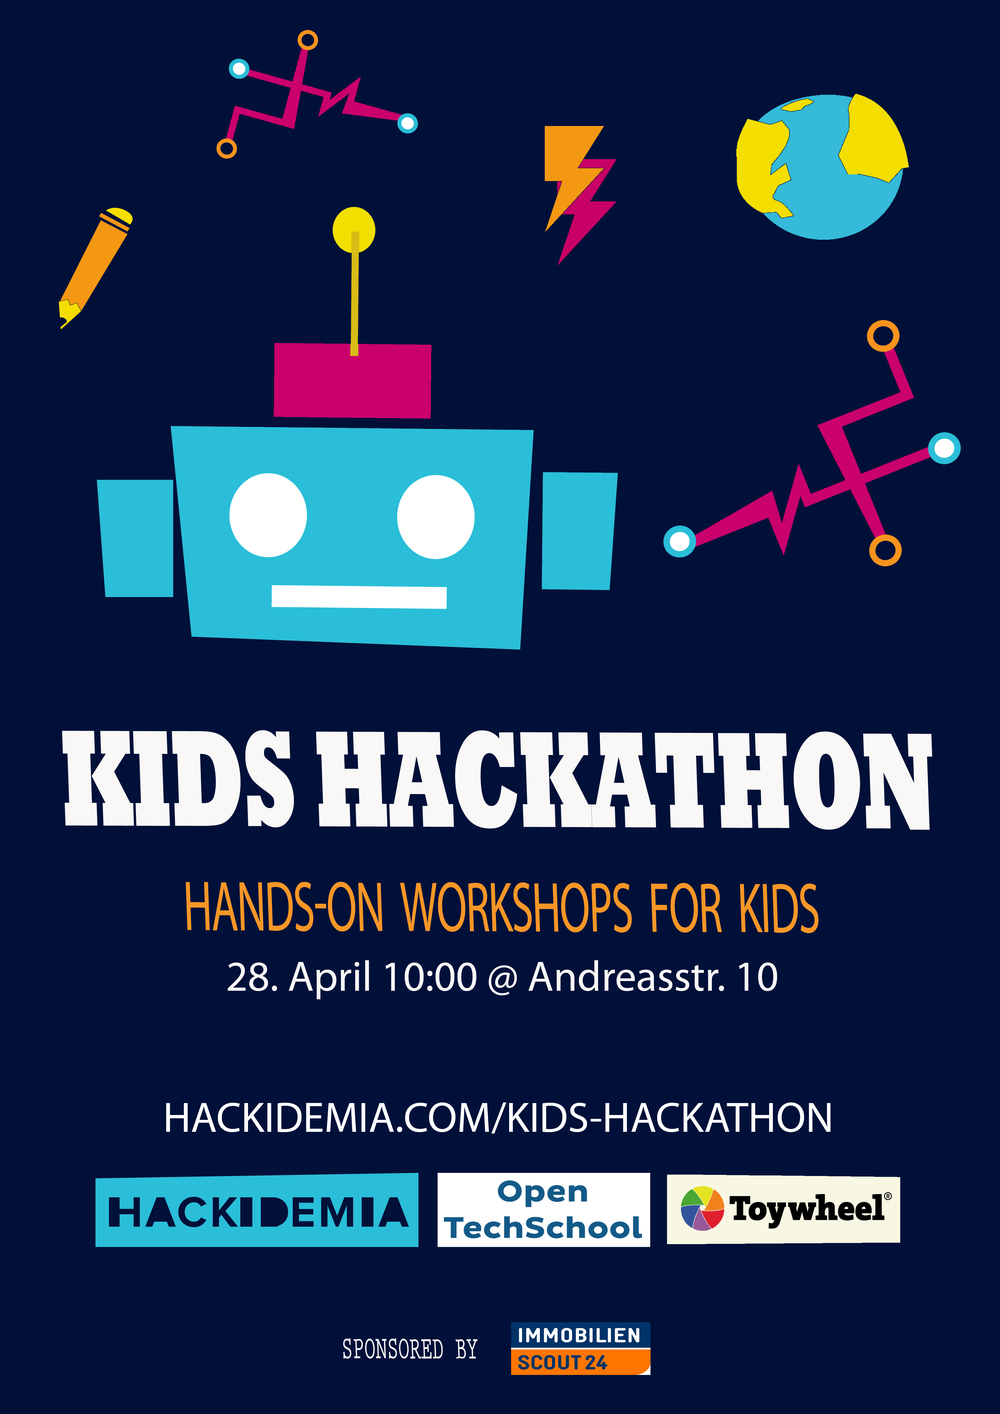 First Hackathon For Kids In Berlin Hackidemia